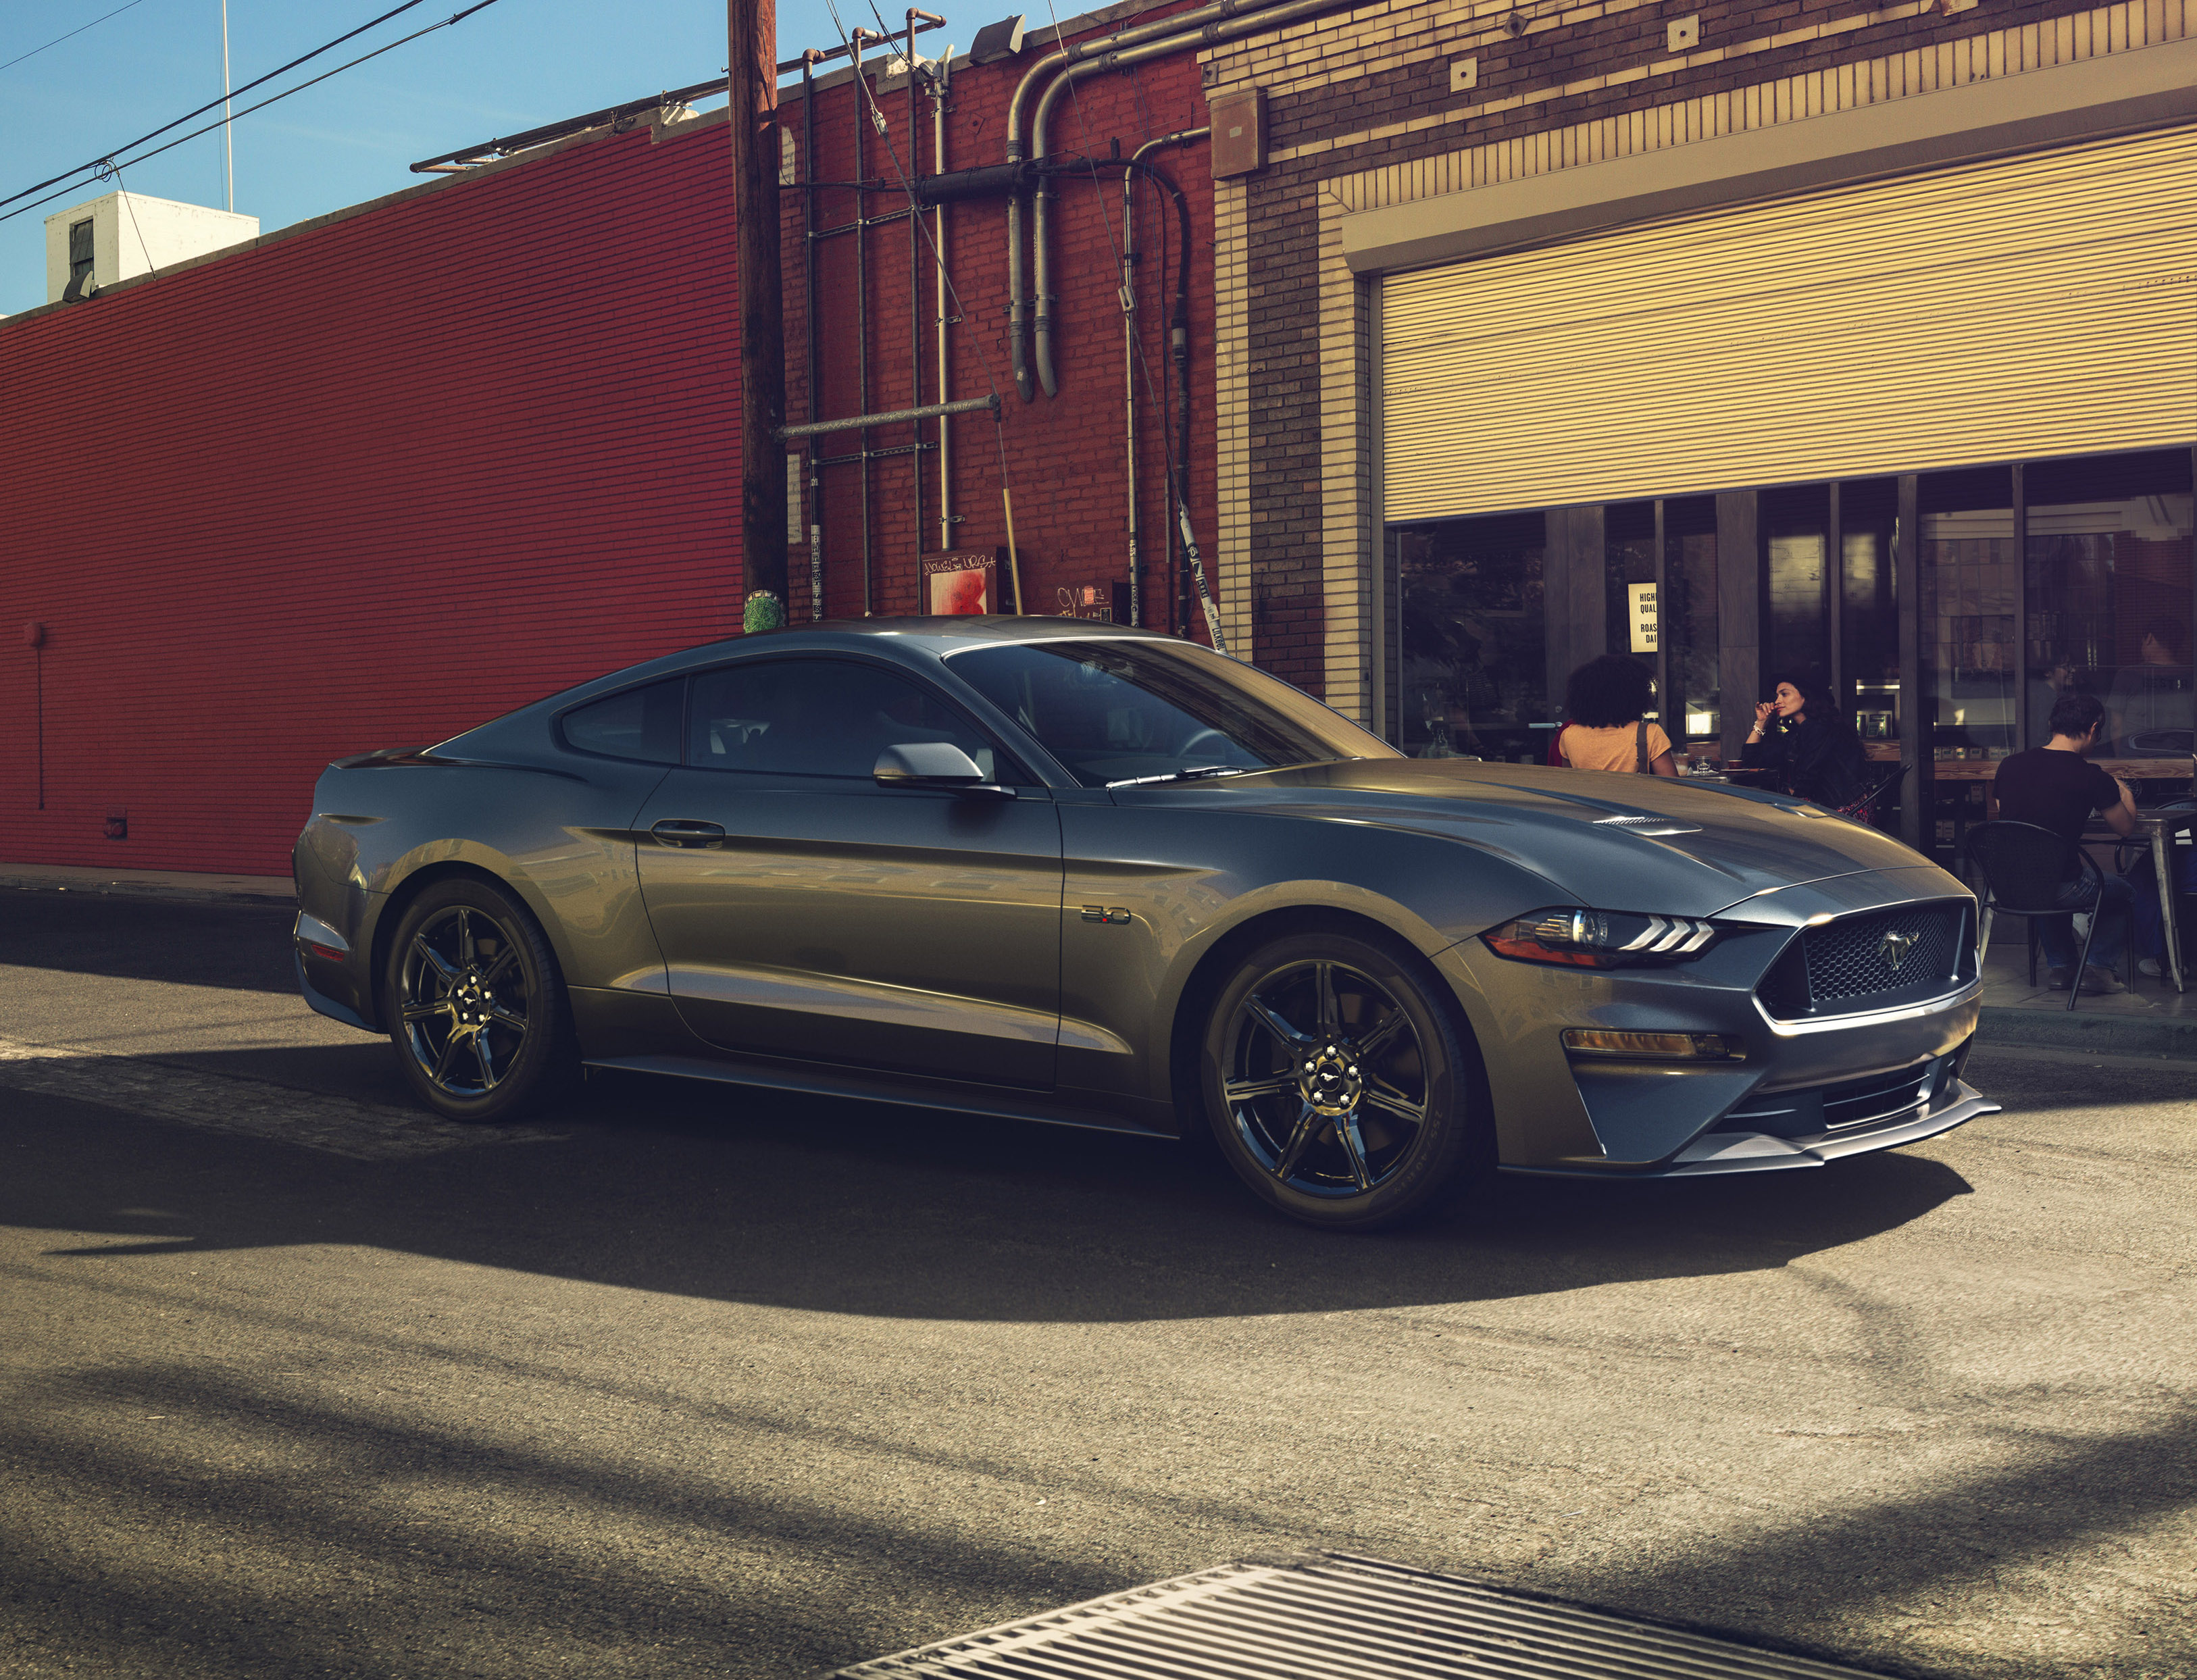 Ford S Newest Mustang Drops The V6 Engine For First Time In Decades Verge